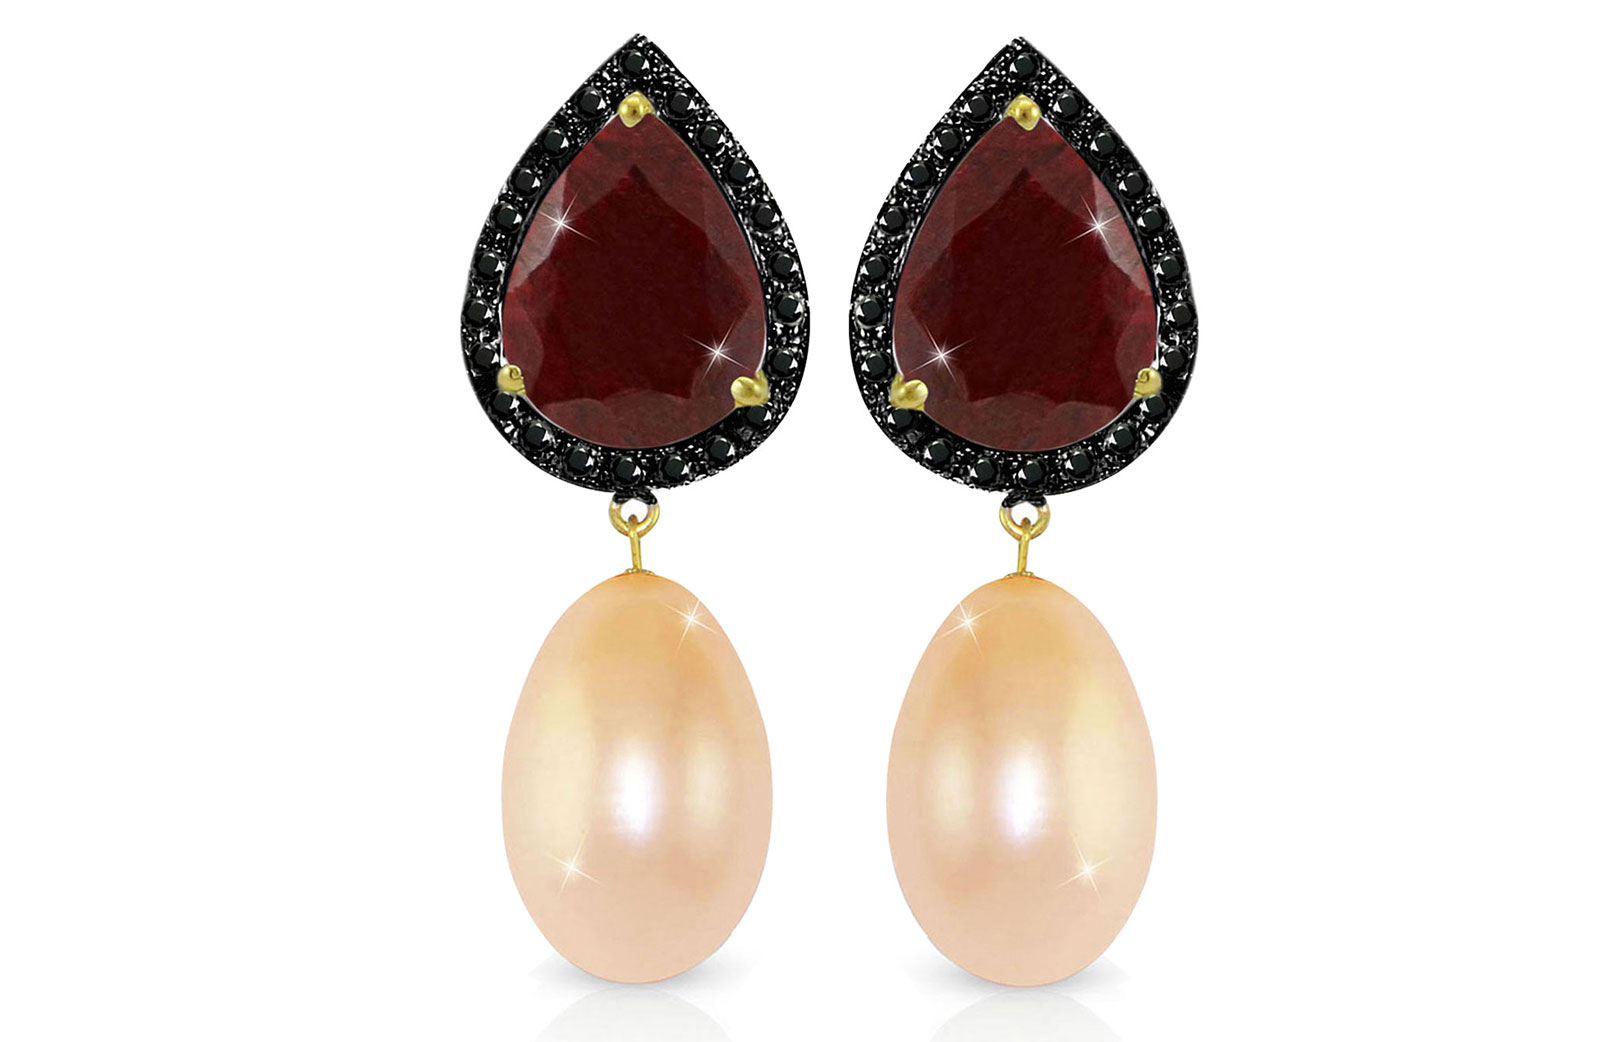 Vera Perla 18K Gold 0.24ct Black Diamonds, Ruby and 13mm Pink Pearl Earrings